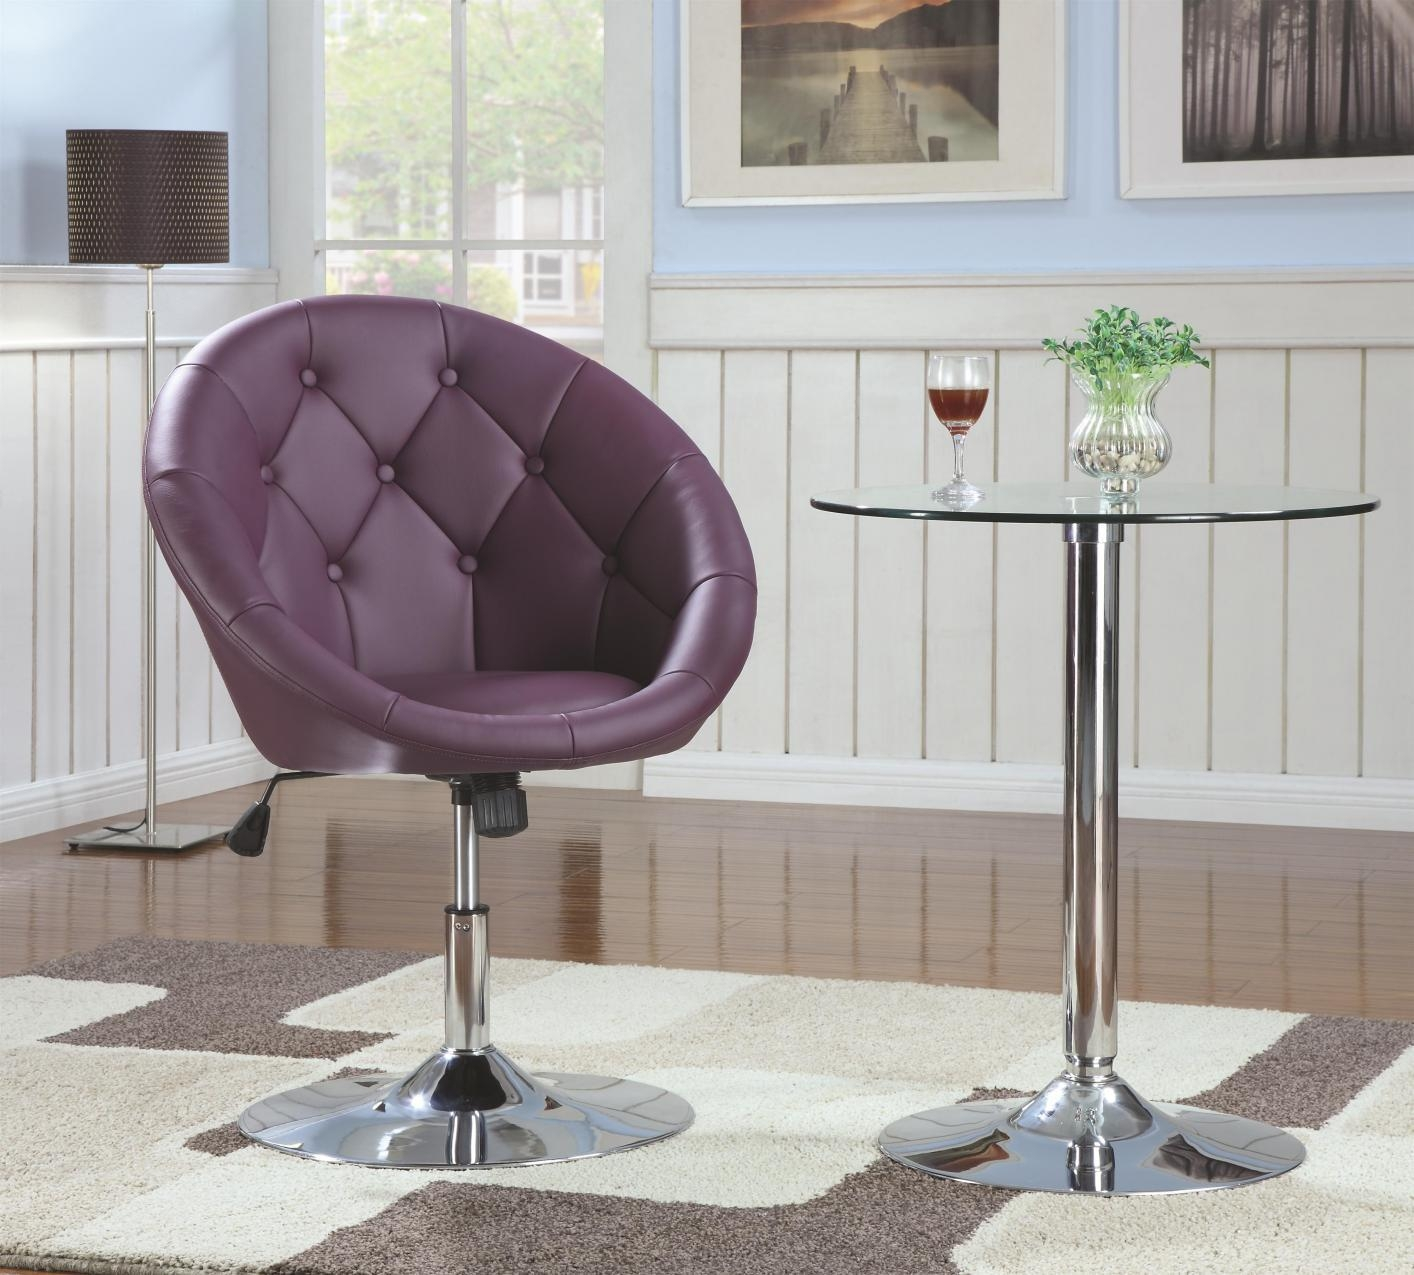 Purple Metal Swivel Chair – Steal A Sofa Furniture Outlet Los For Sofa With Swivel Chair (View 20 of 20)